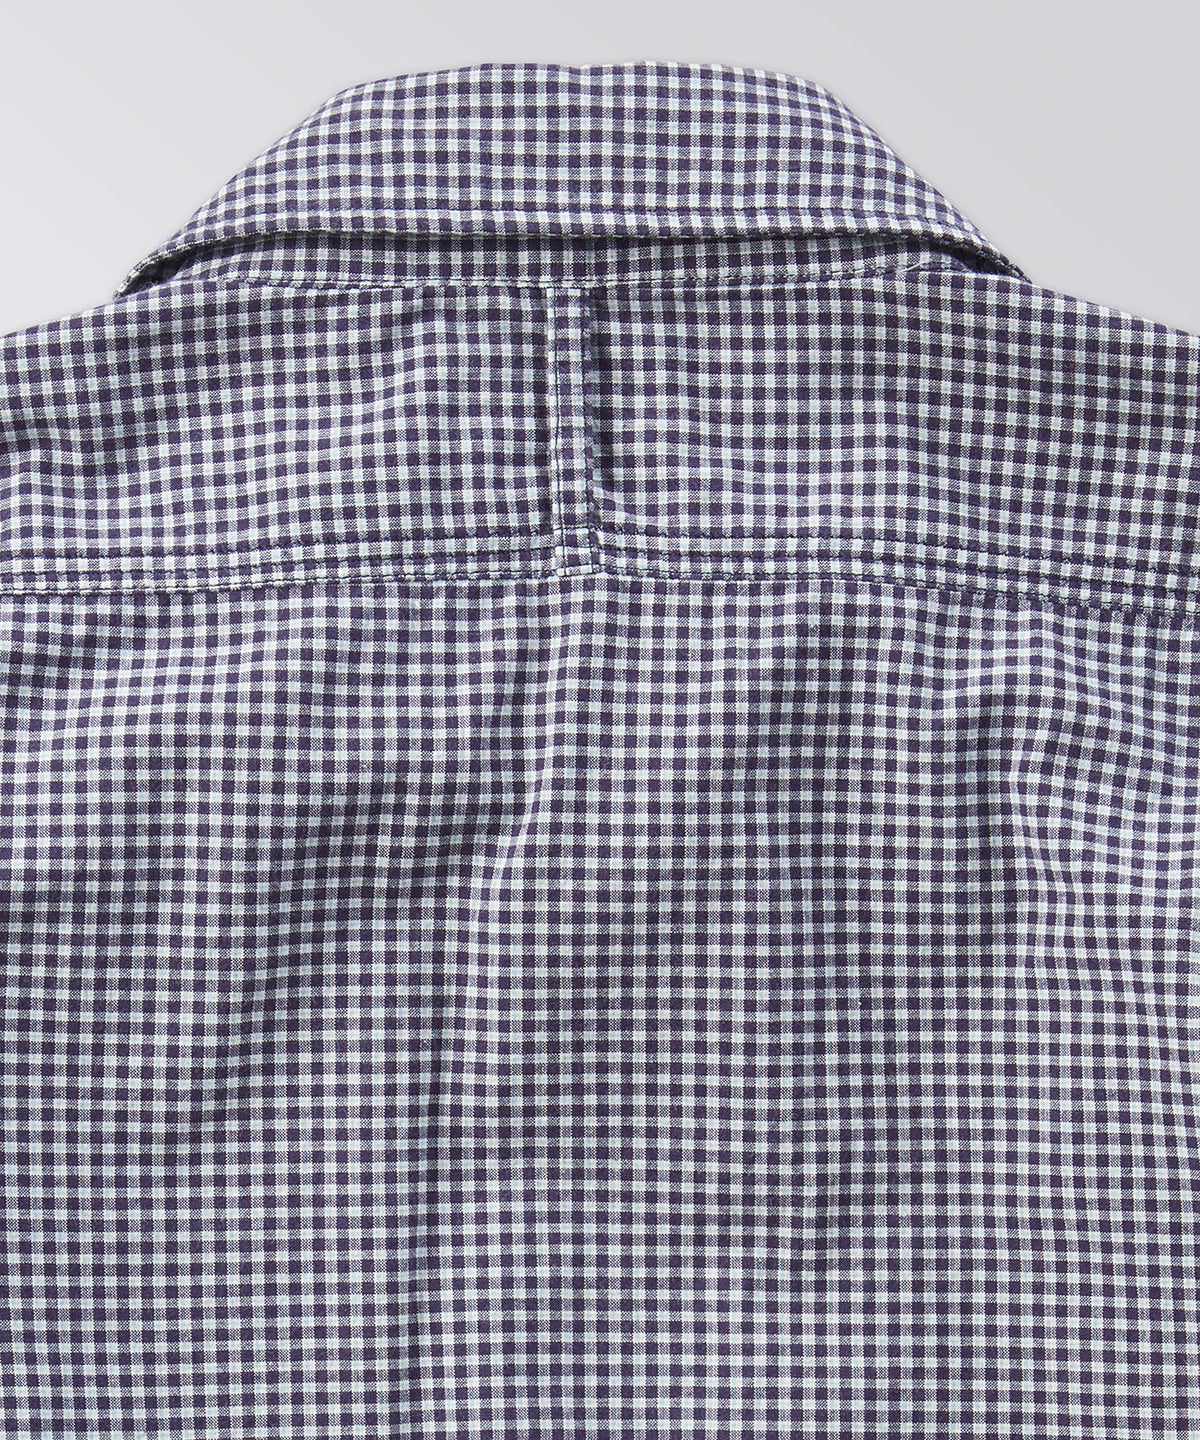 Marlan Check Workshirt - Blue/White